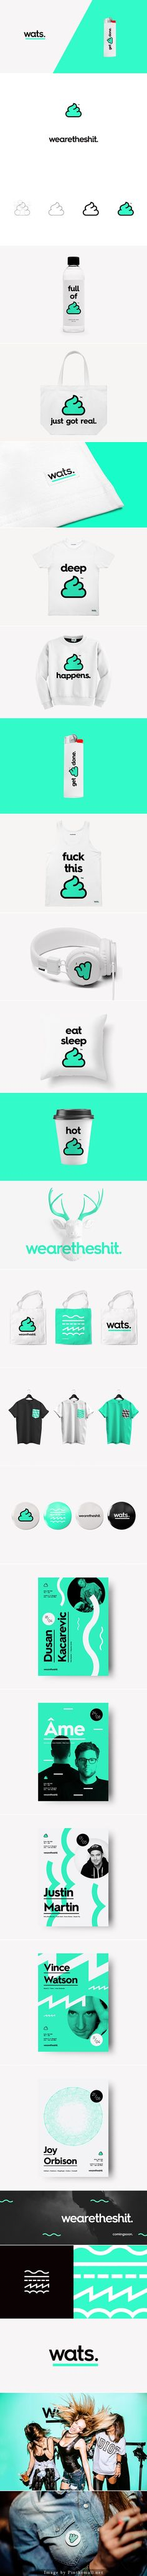 Wearetheshit™ is a small, but warm, lounge bar and nightclub located at the top of the shopping center in Belgrade. Using only black and mint, Miki Stefanoski and Anastazija Manasievska developed the full brand identity, logo, promo materials, templates and merchandise that would establish a catchy, but strong and flexible look that is easy to build upon at every future event.